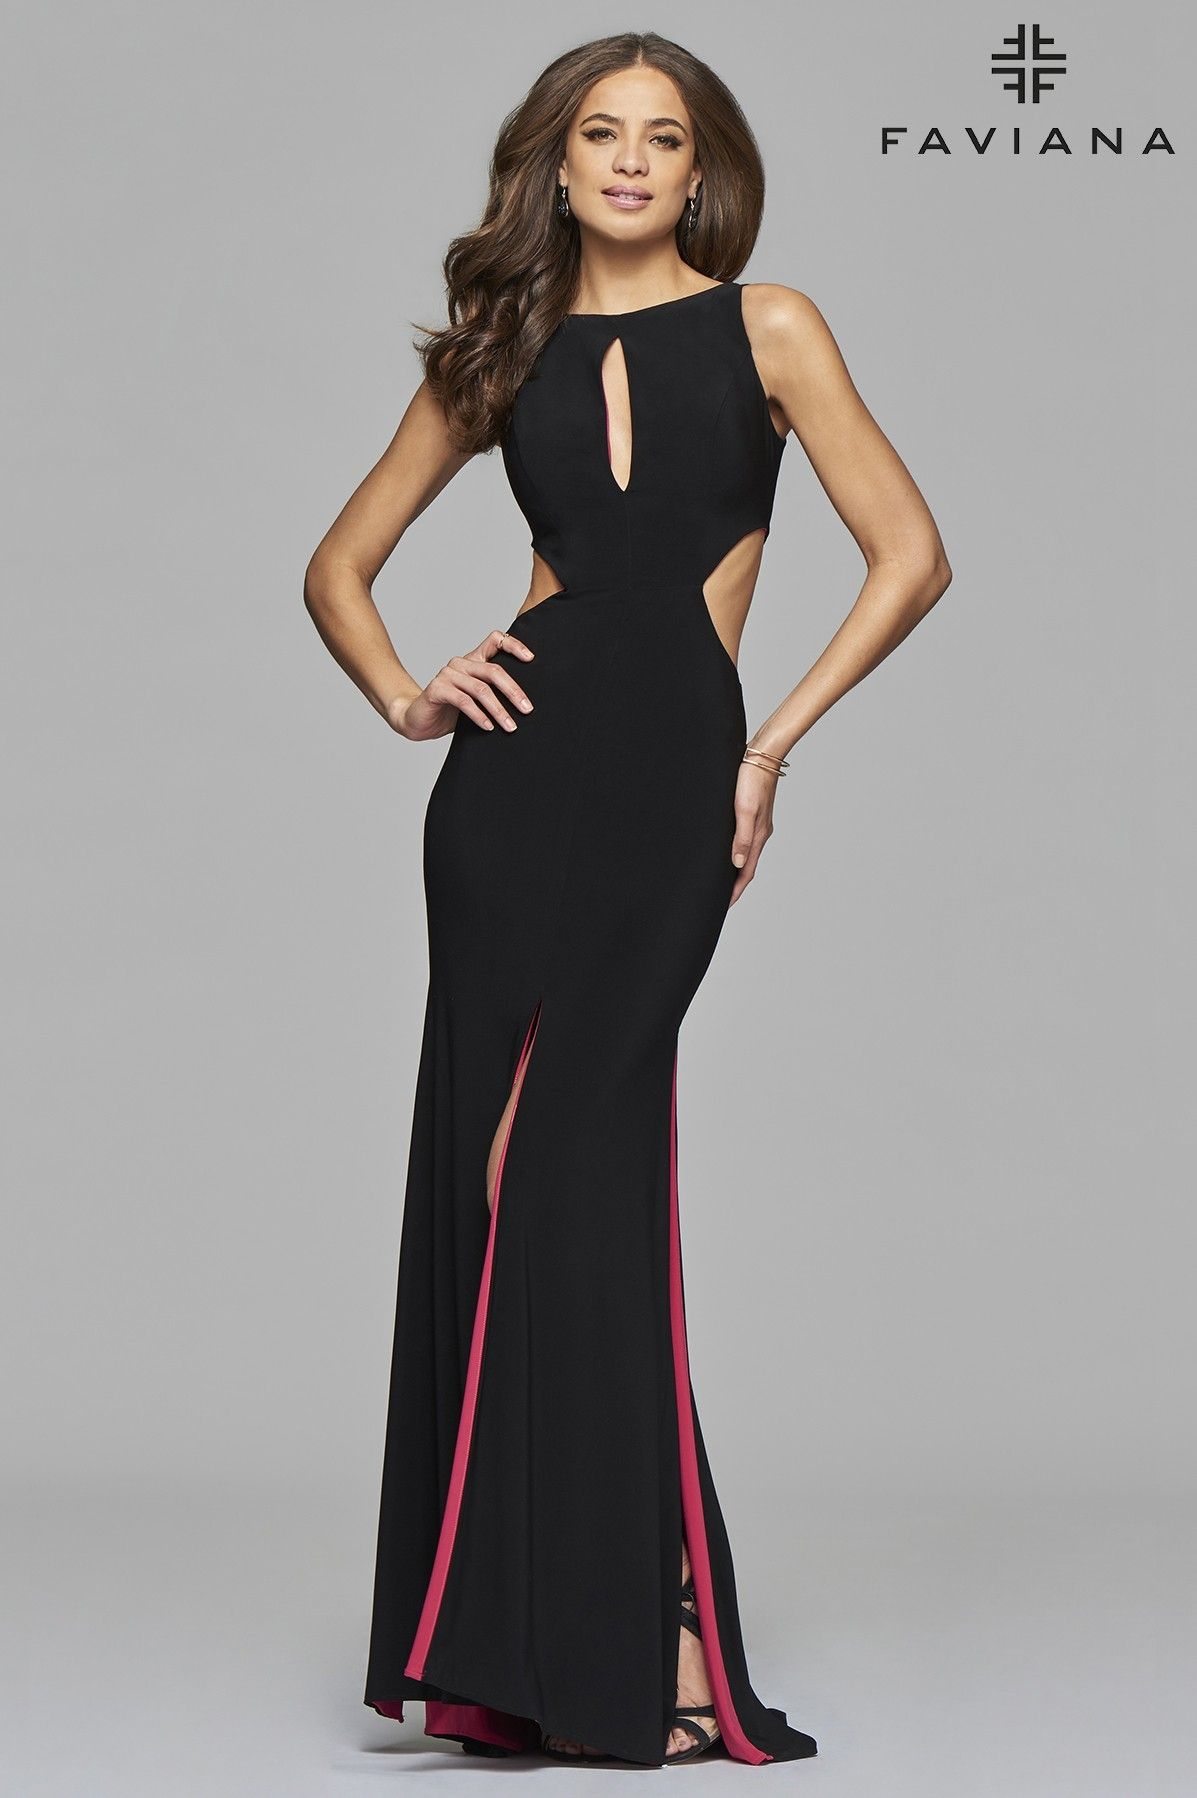 Jersey high neck evening dress with keyhole side cutouts and